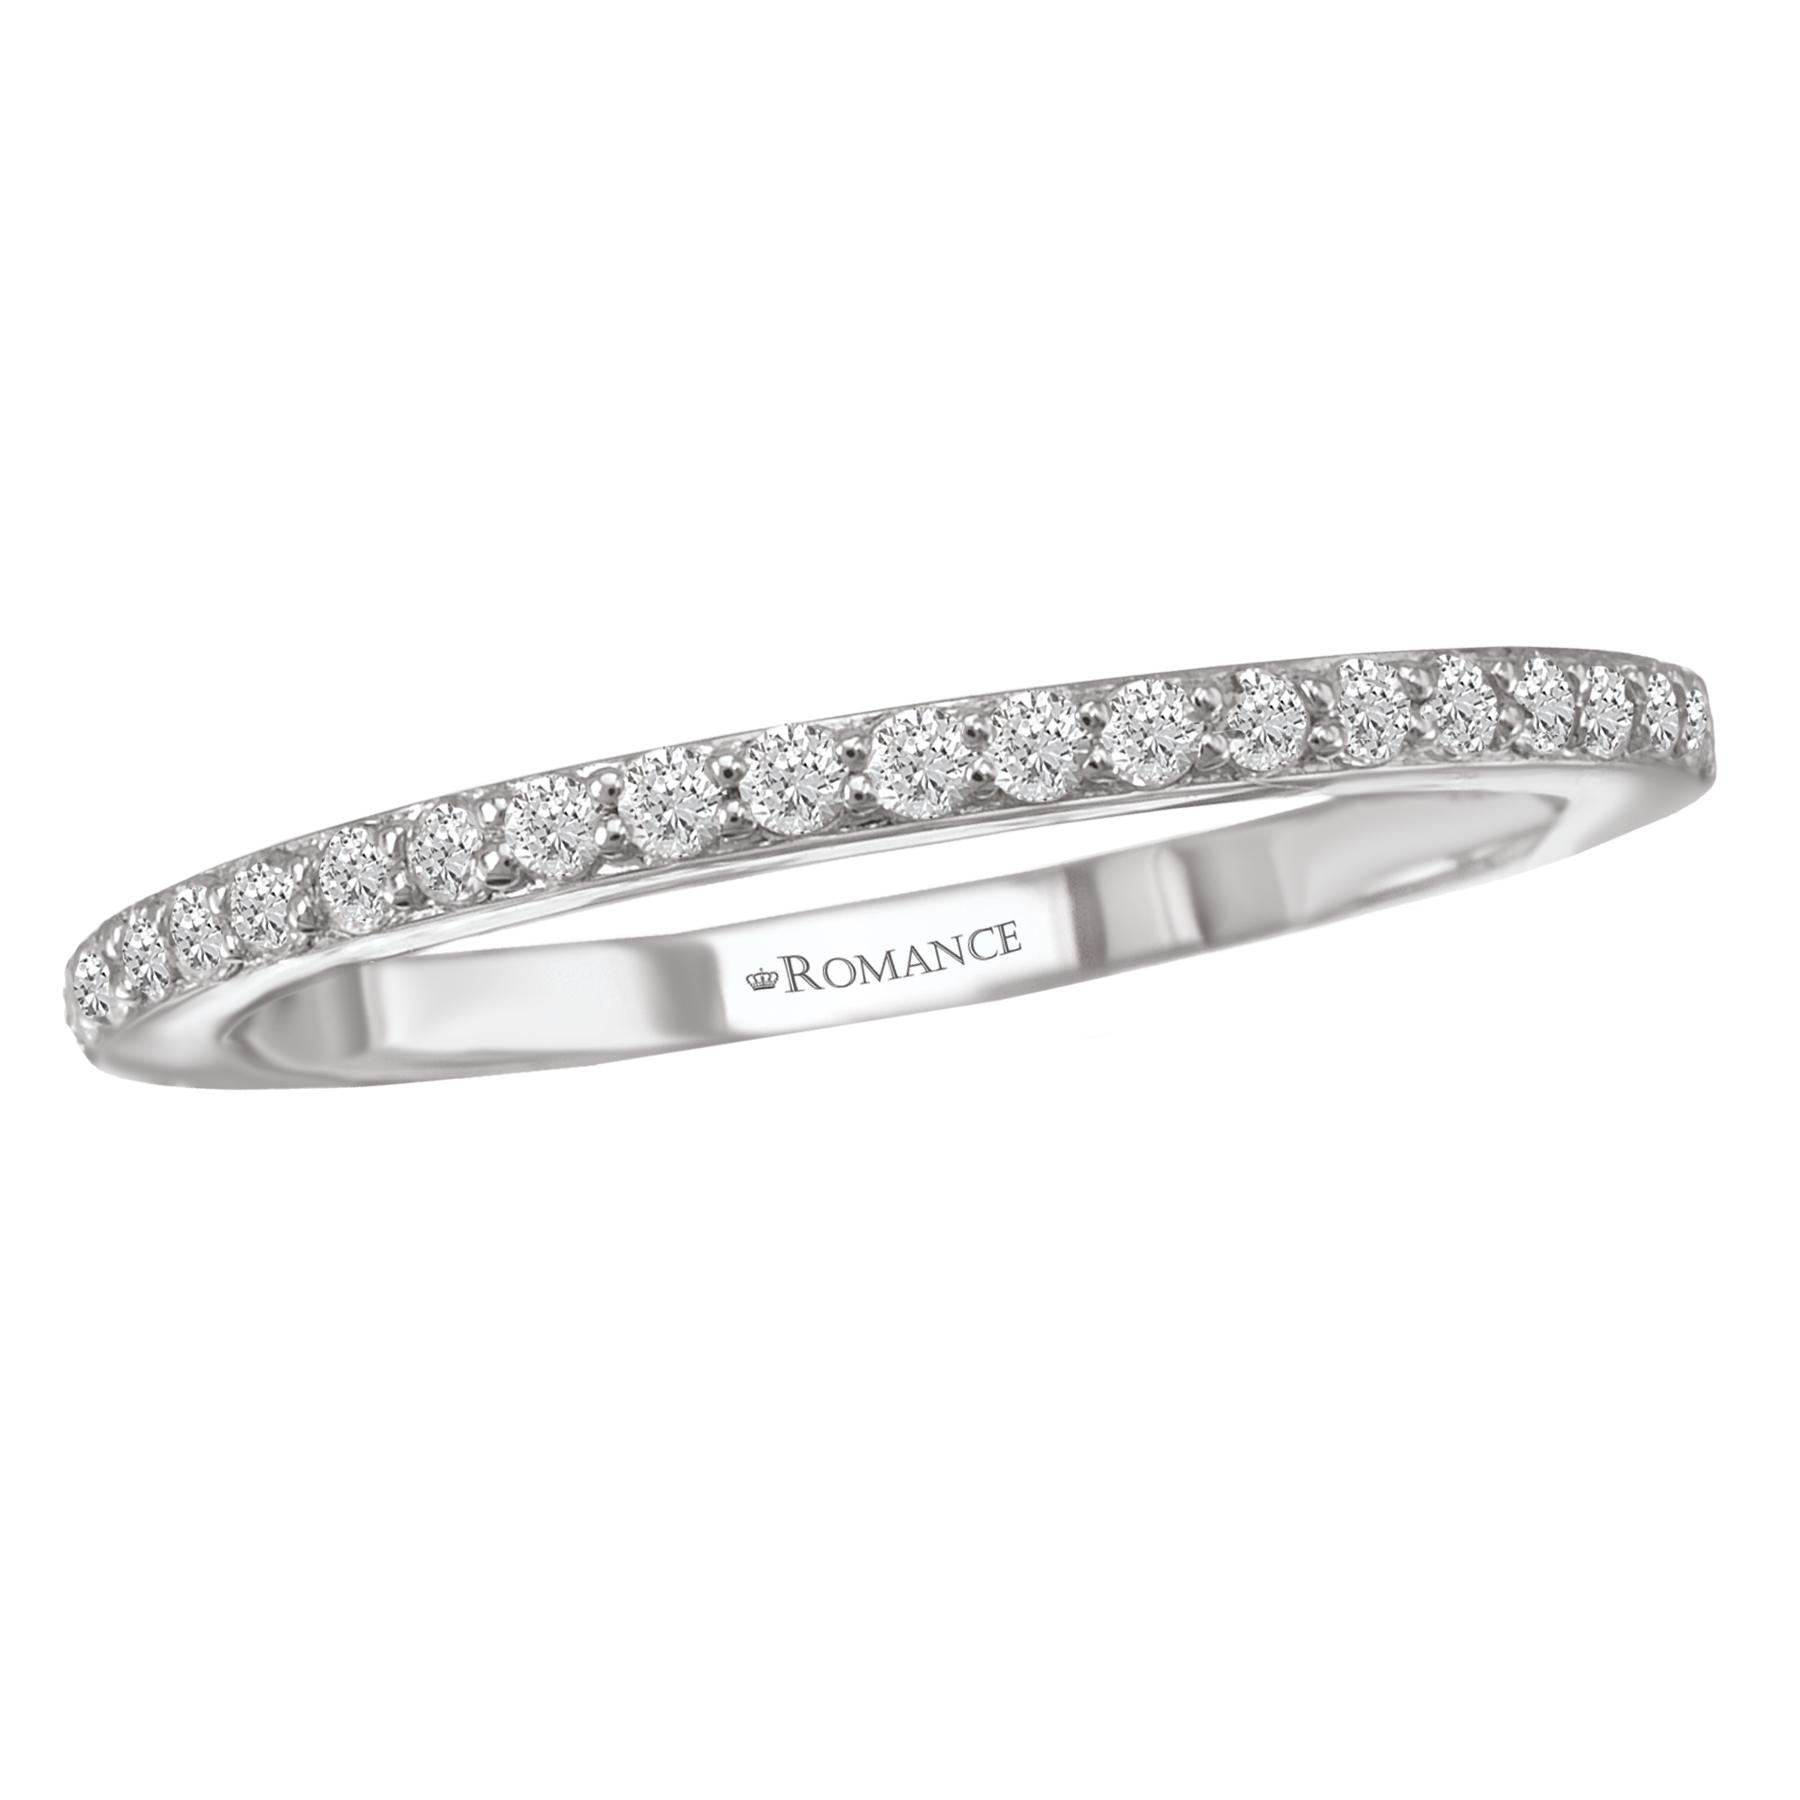 Romance Wedding Bands 117484-W product image